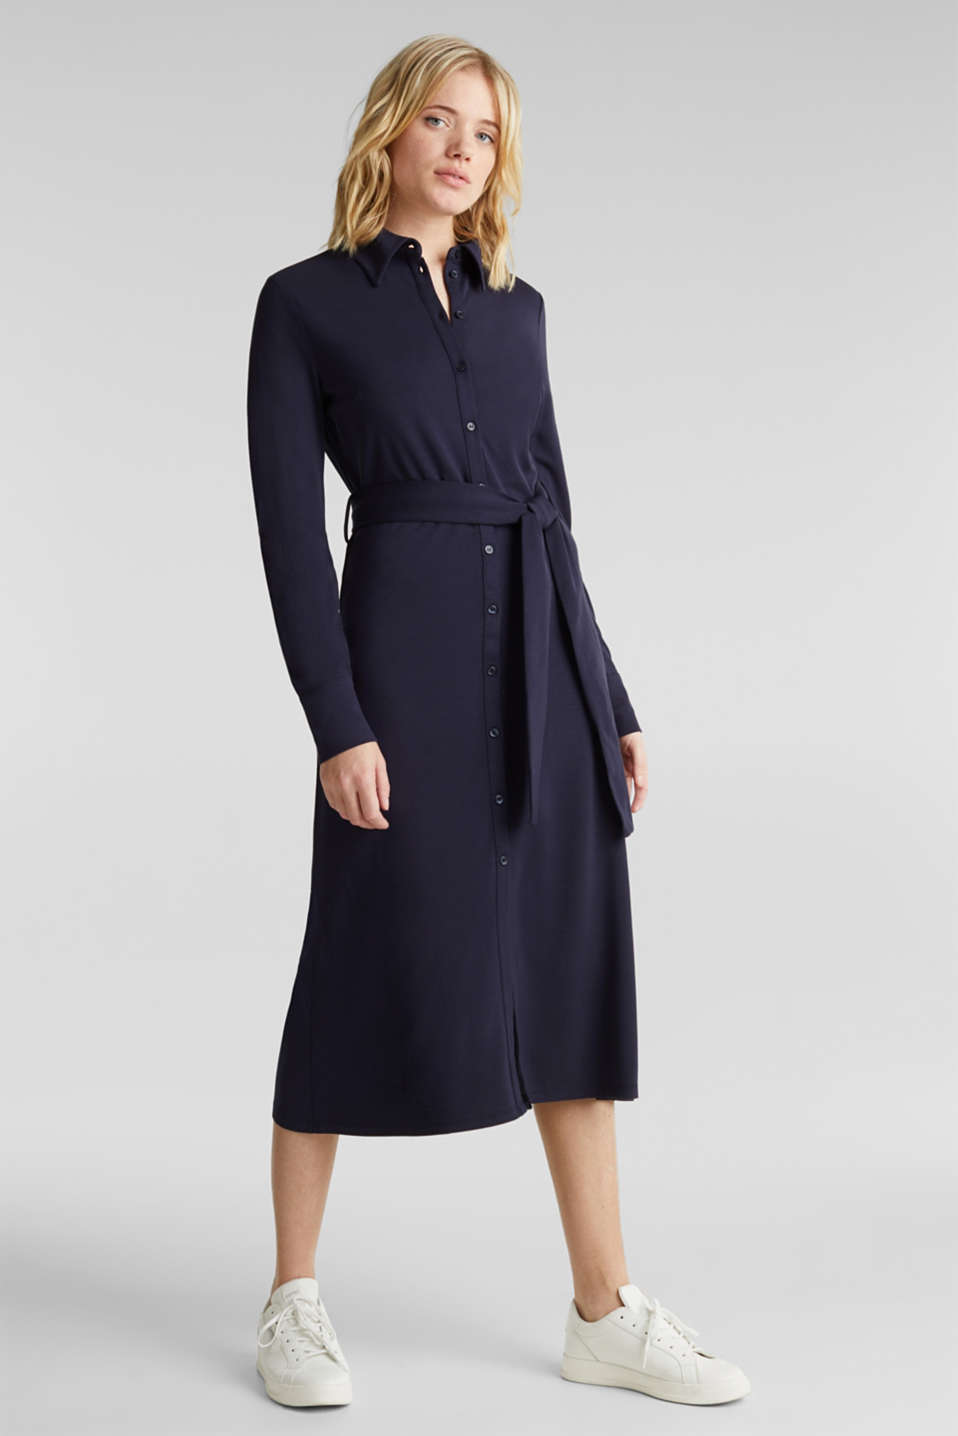 Esprit - Stretch jersey shirt dress